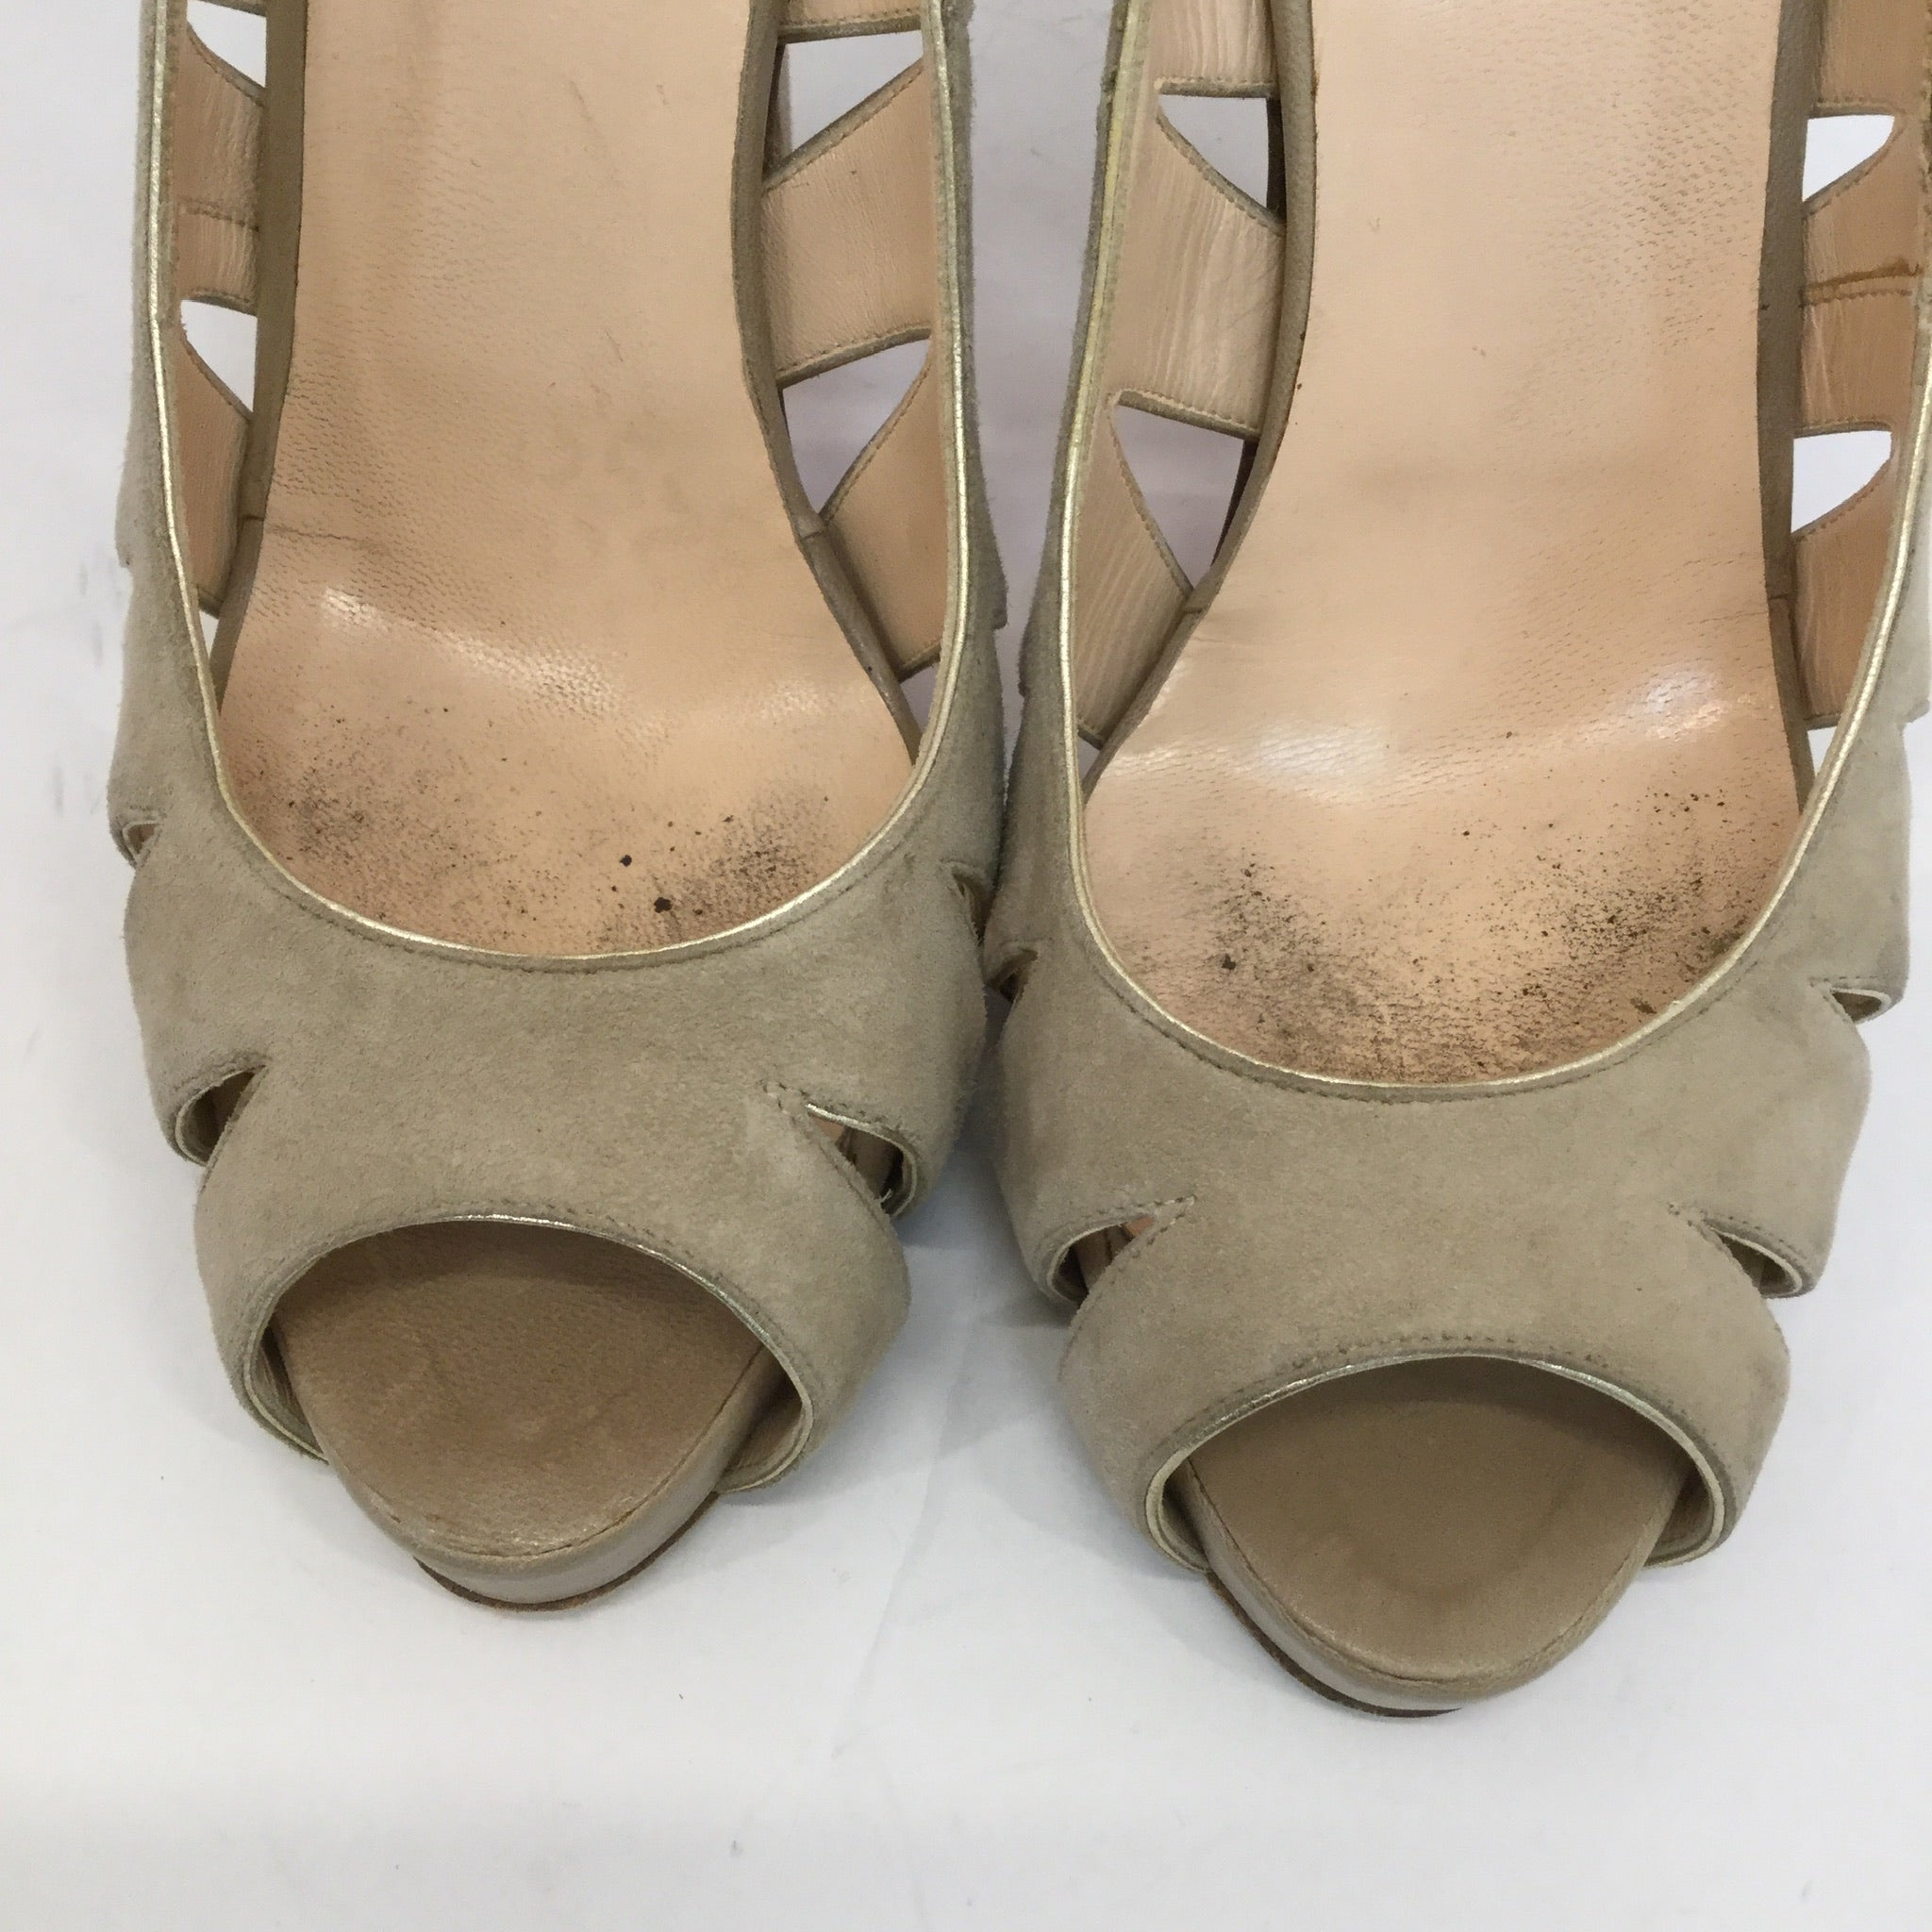 Christian Louboutin Suede Cut Out Pumps - size 37.5